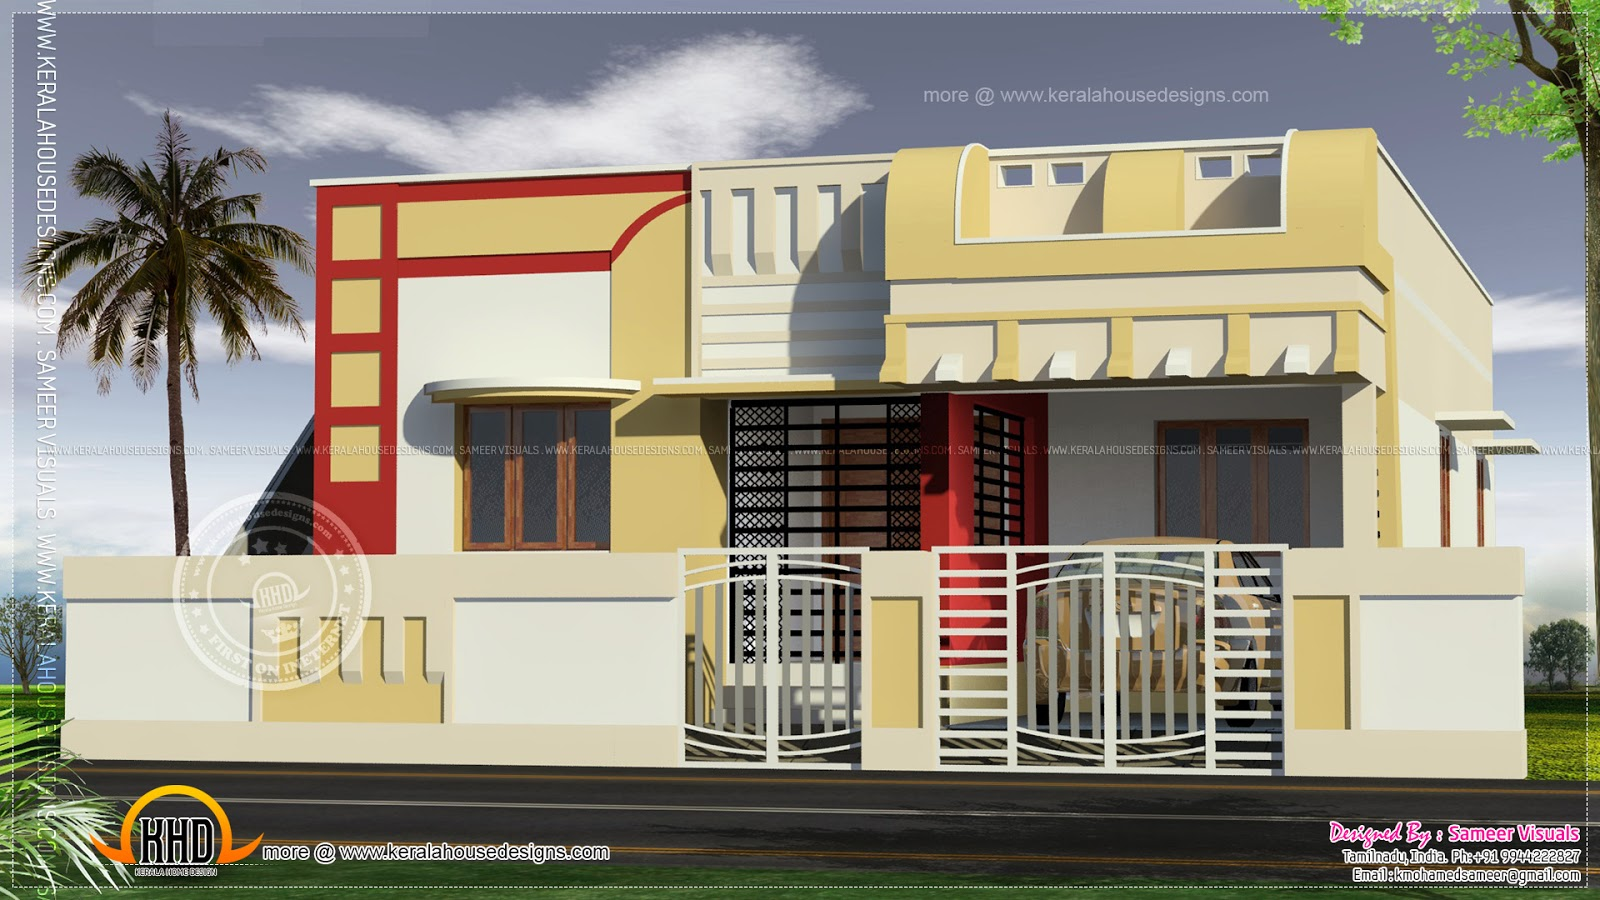 Small South Indian home design Kerala home design and floor plans